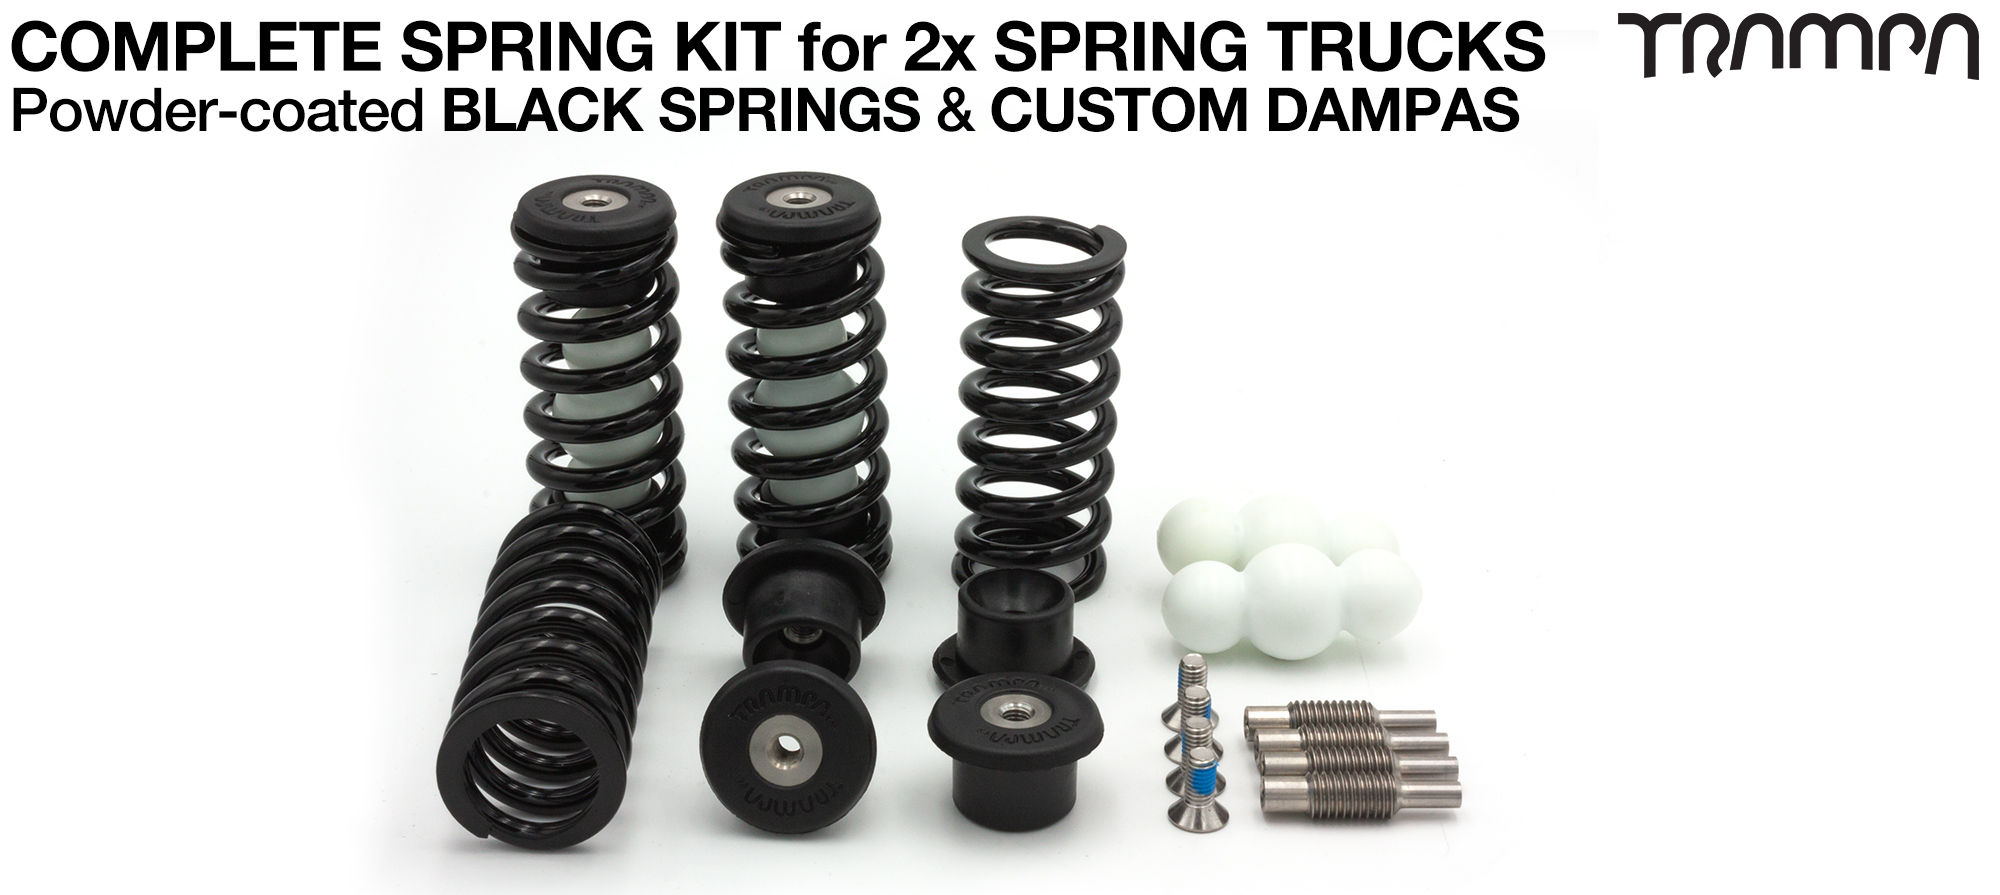 Powder Coated Springs - BLACK